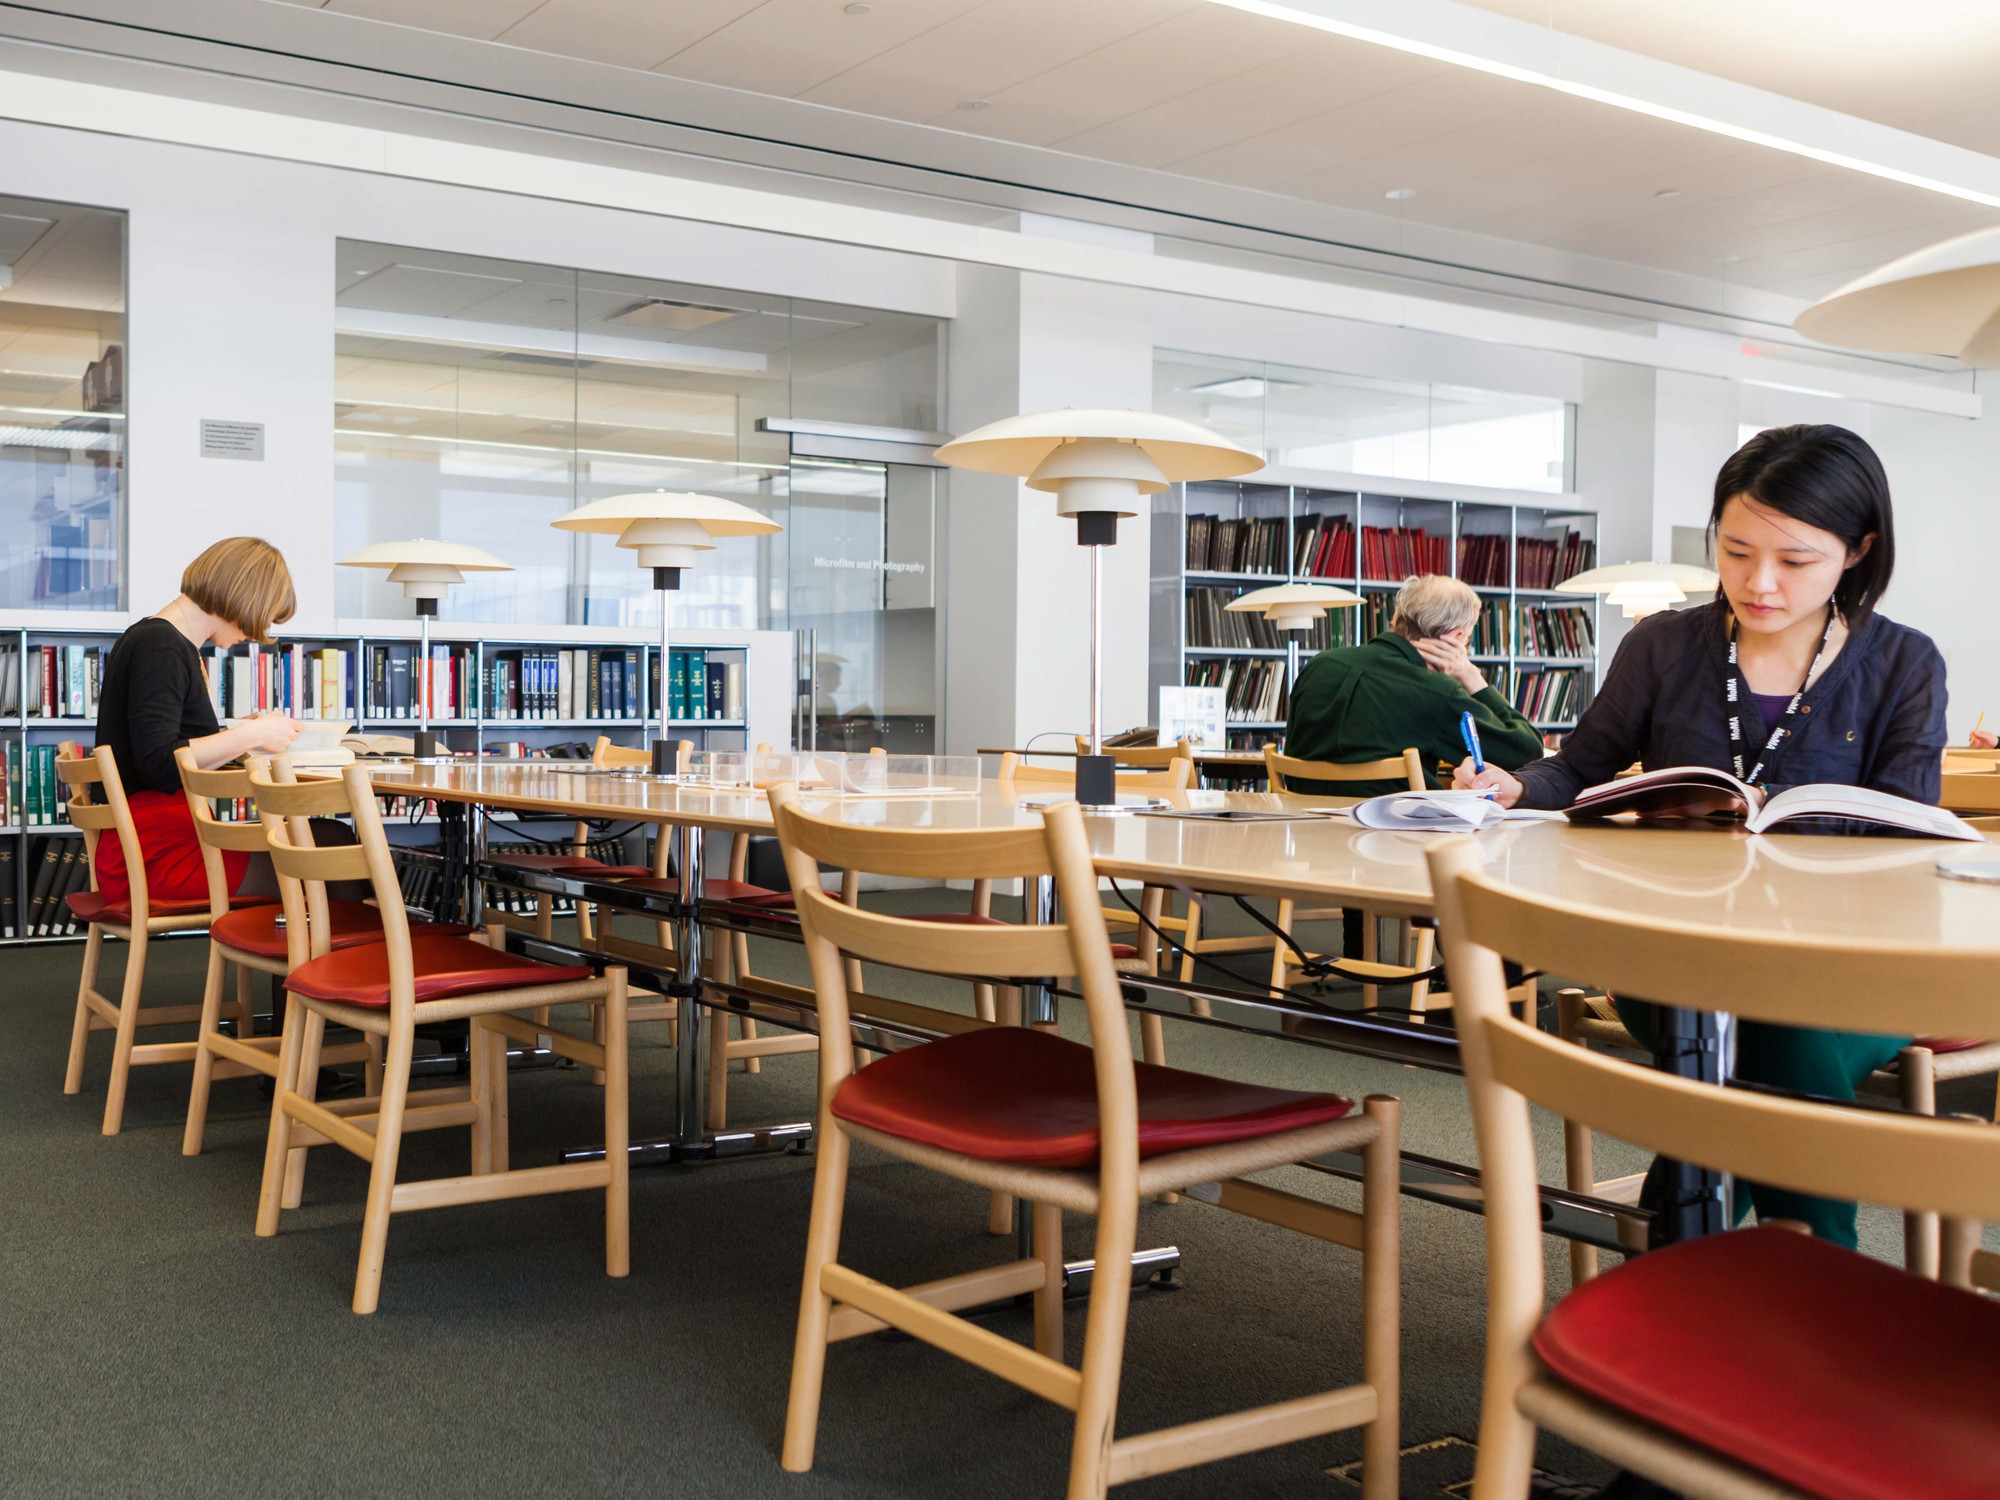 The Library Reading Room in The Lewis B. and Dorothy Cullman Education and Research Building, designed by Yoshio Taniguchi. Photo: Laurie Lambrecht